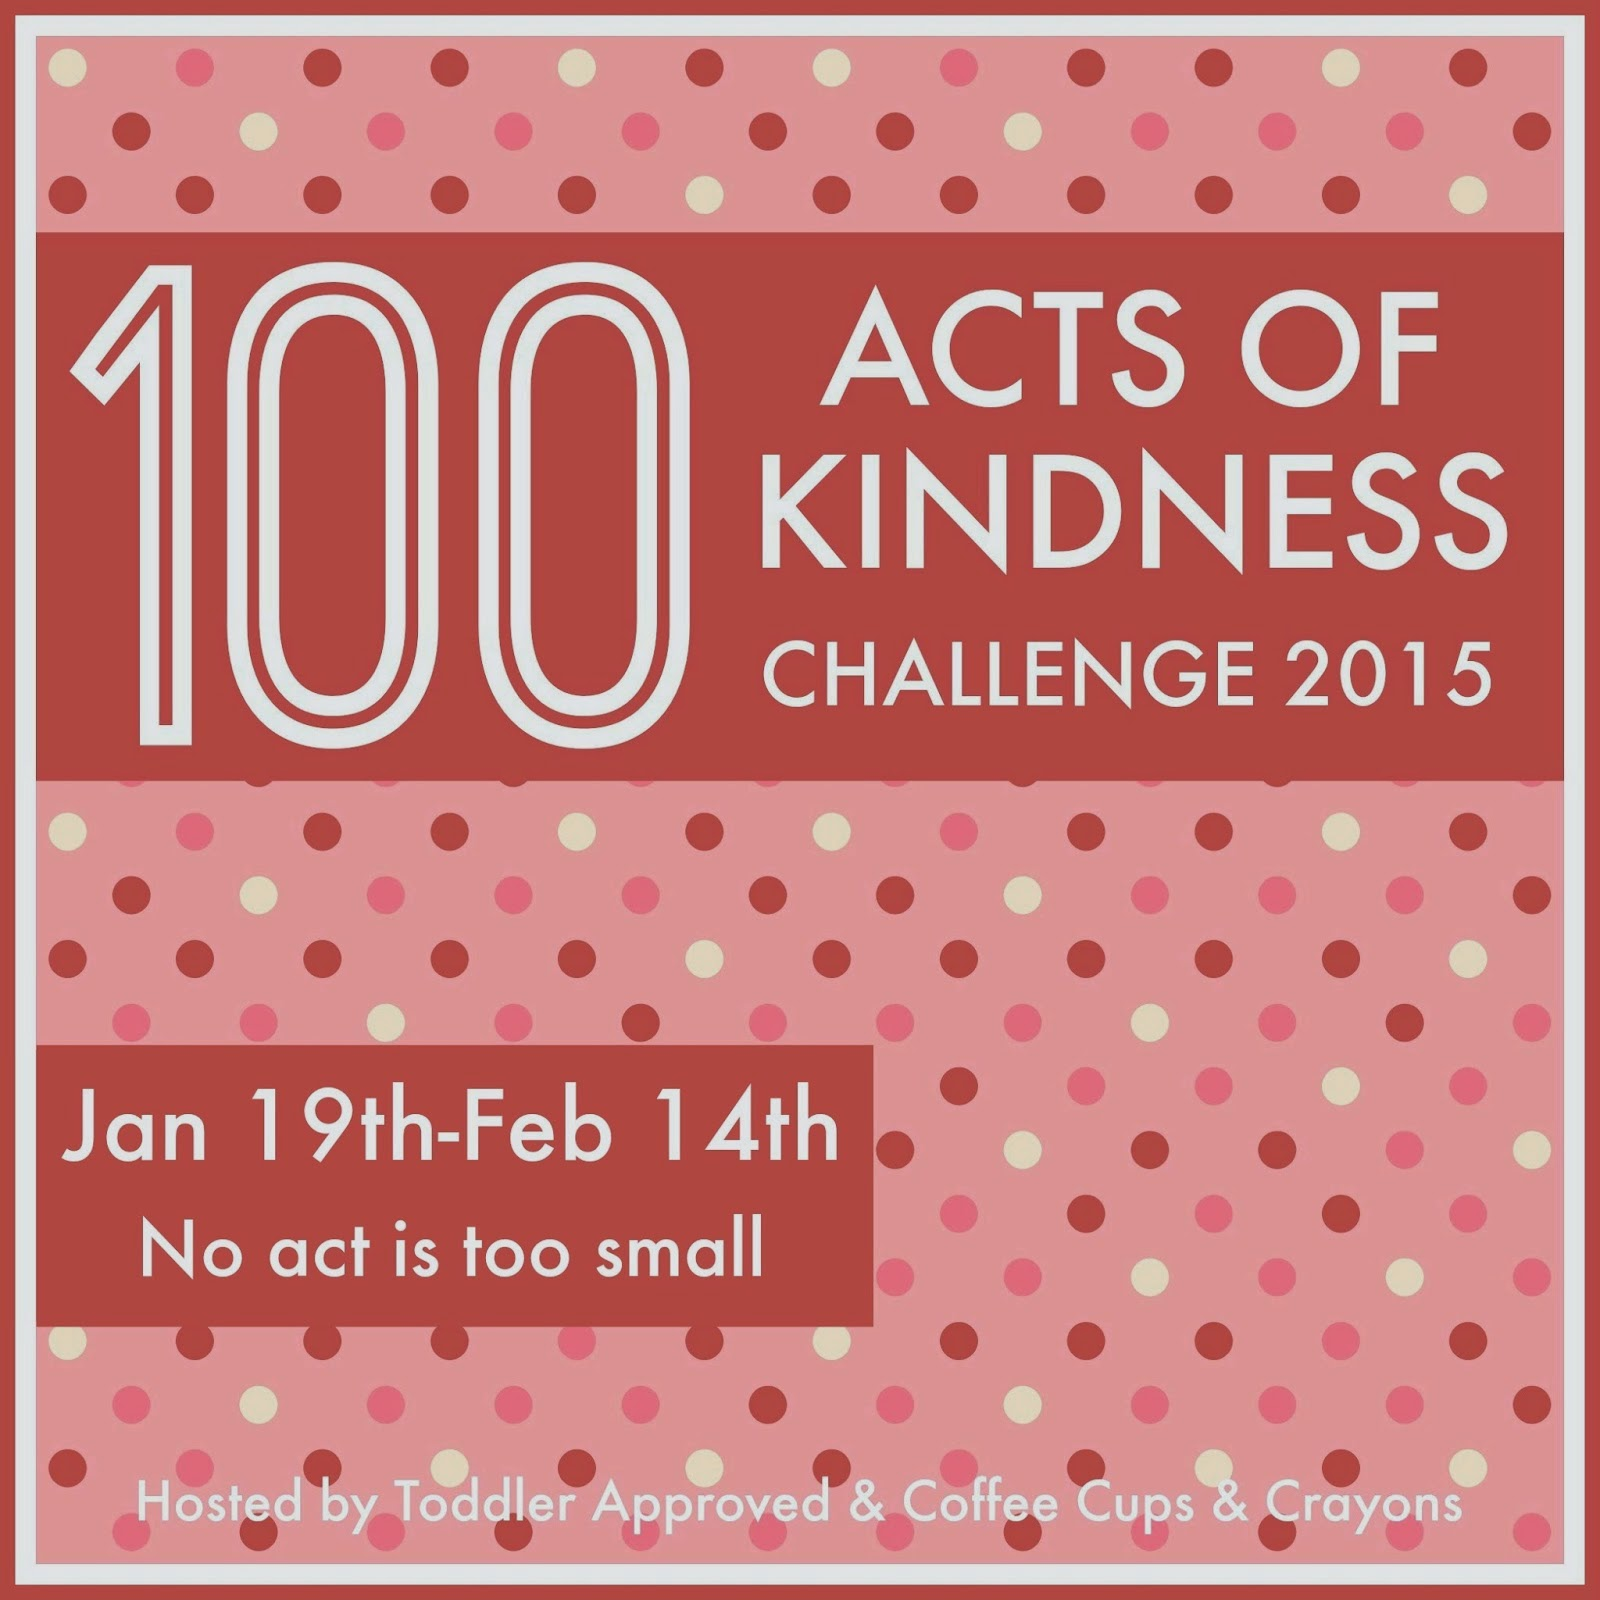 Toddler Quotes 100 Acts Of Kindness Challenge & Mlkj Printable Kindness Quotes